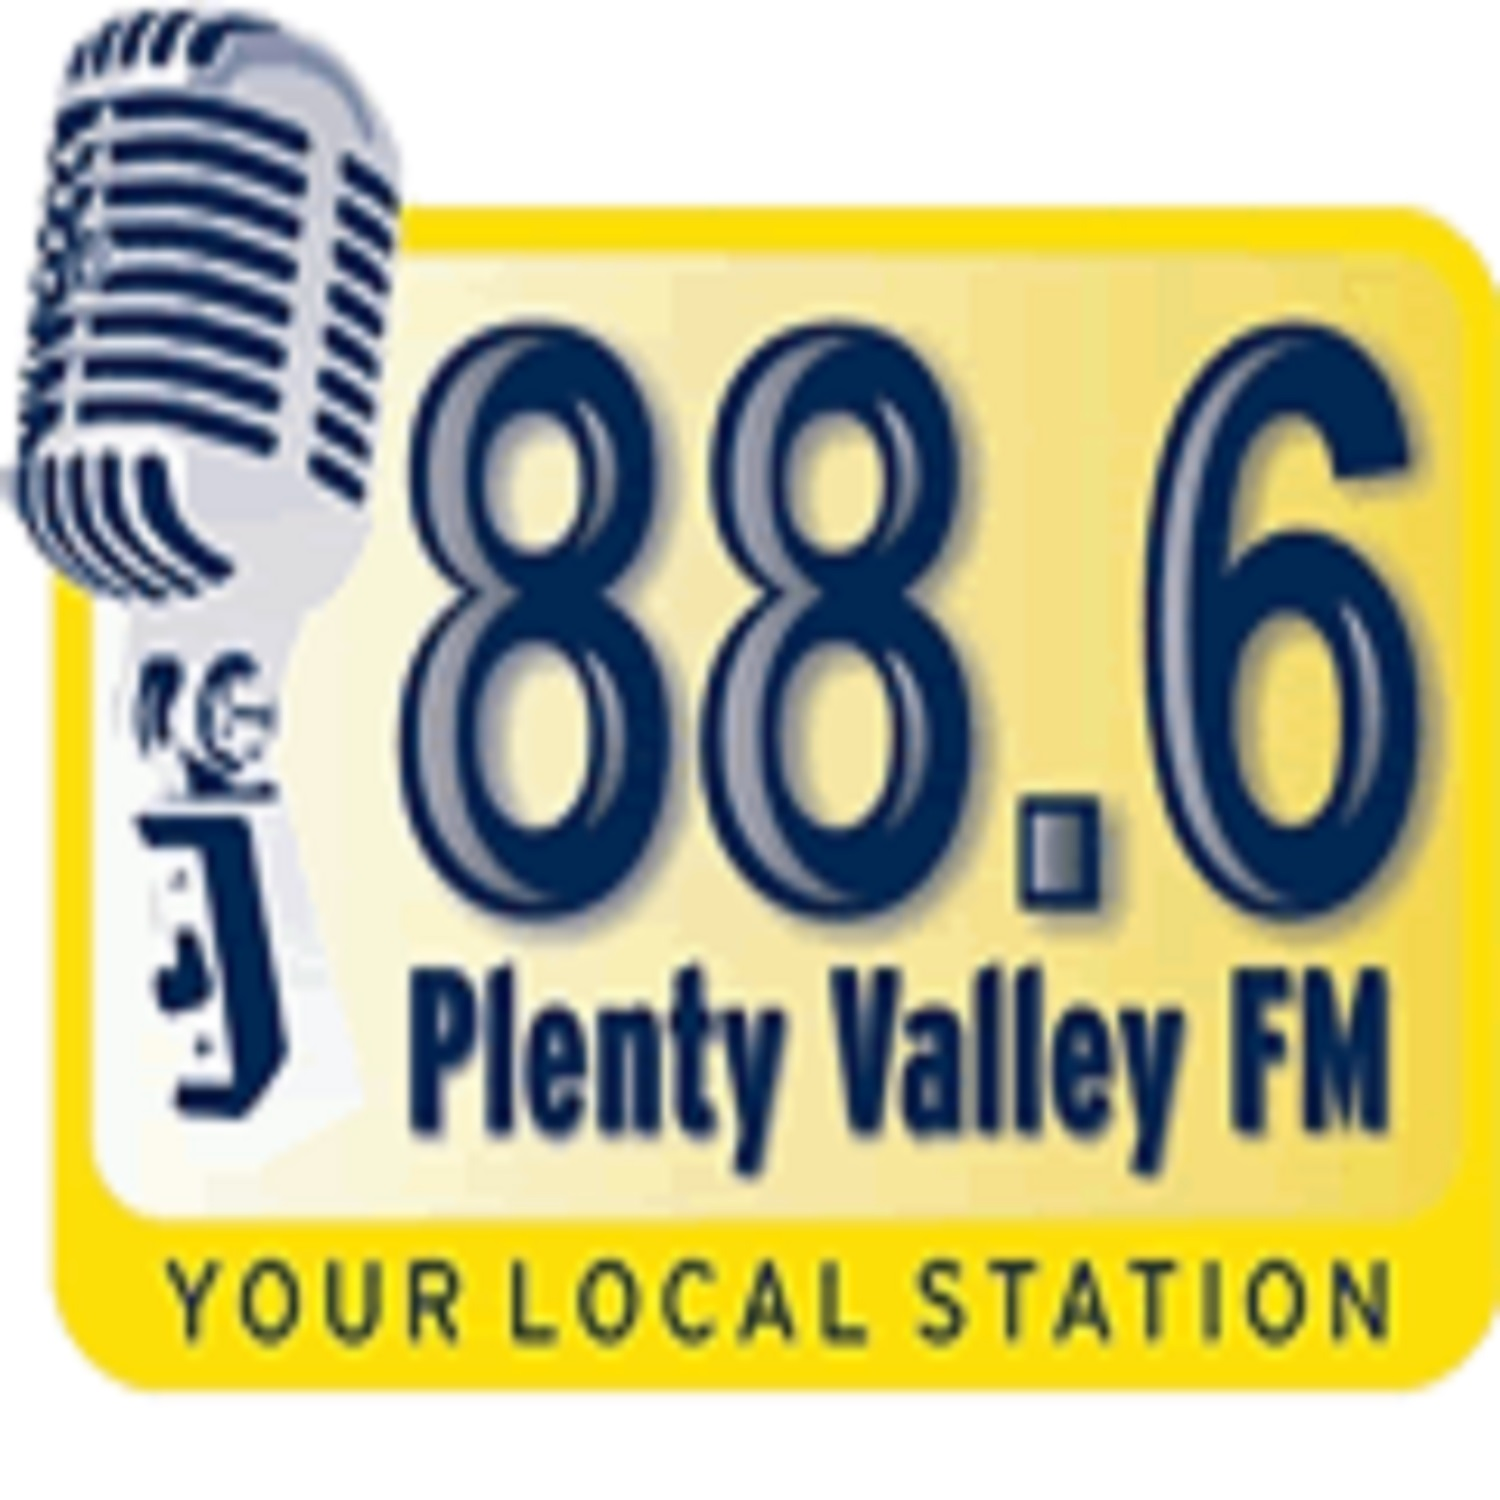 Plenty Valley FM 88.6